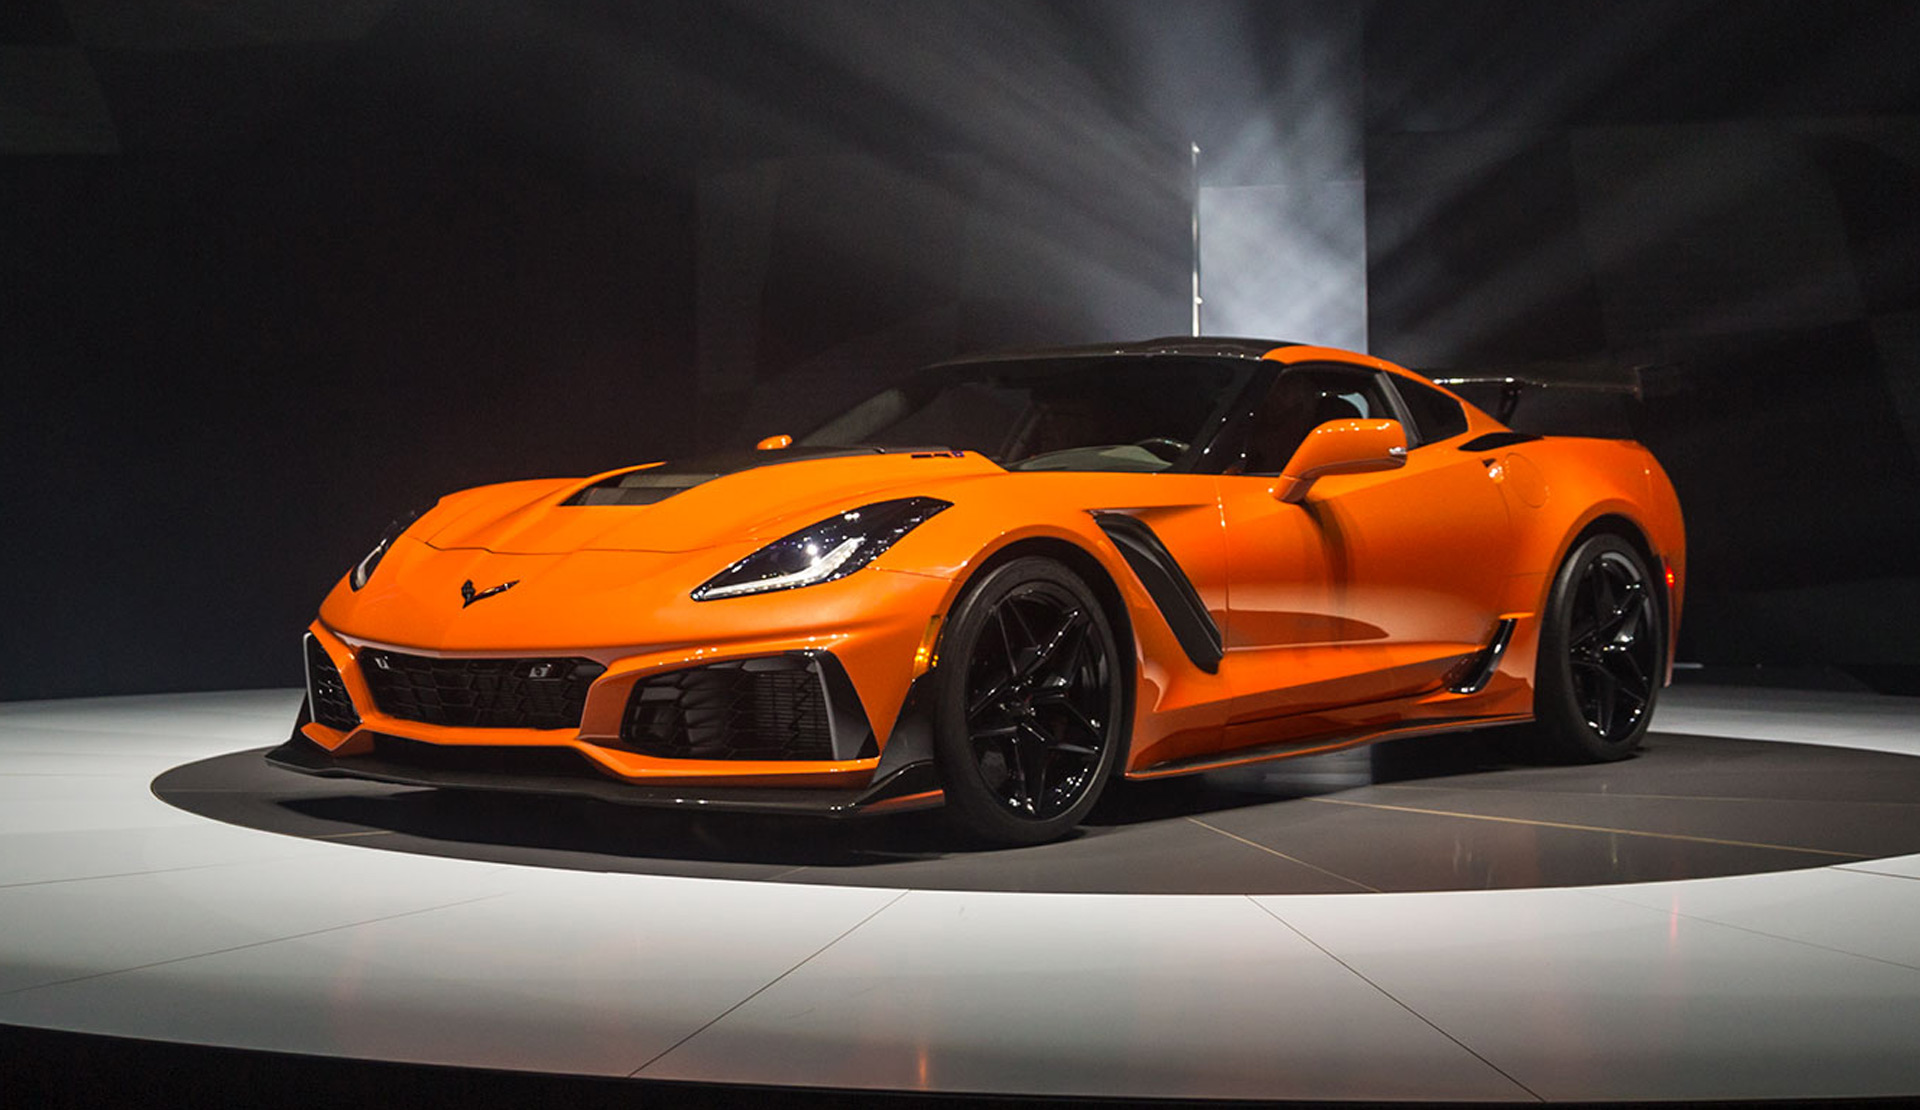 2019 Chevrolet Corvette Zr1 Bows With 755 Hp Lt5 V 8